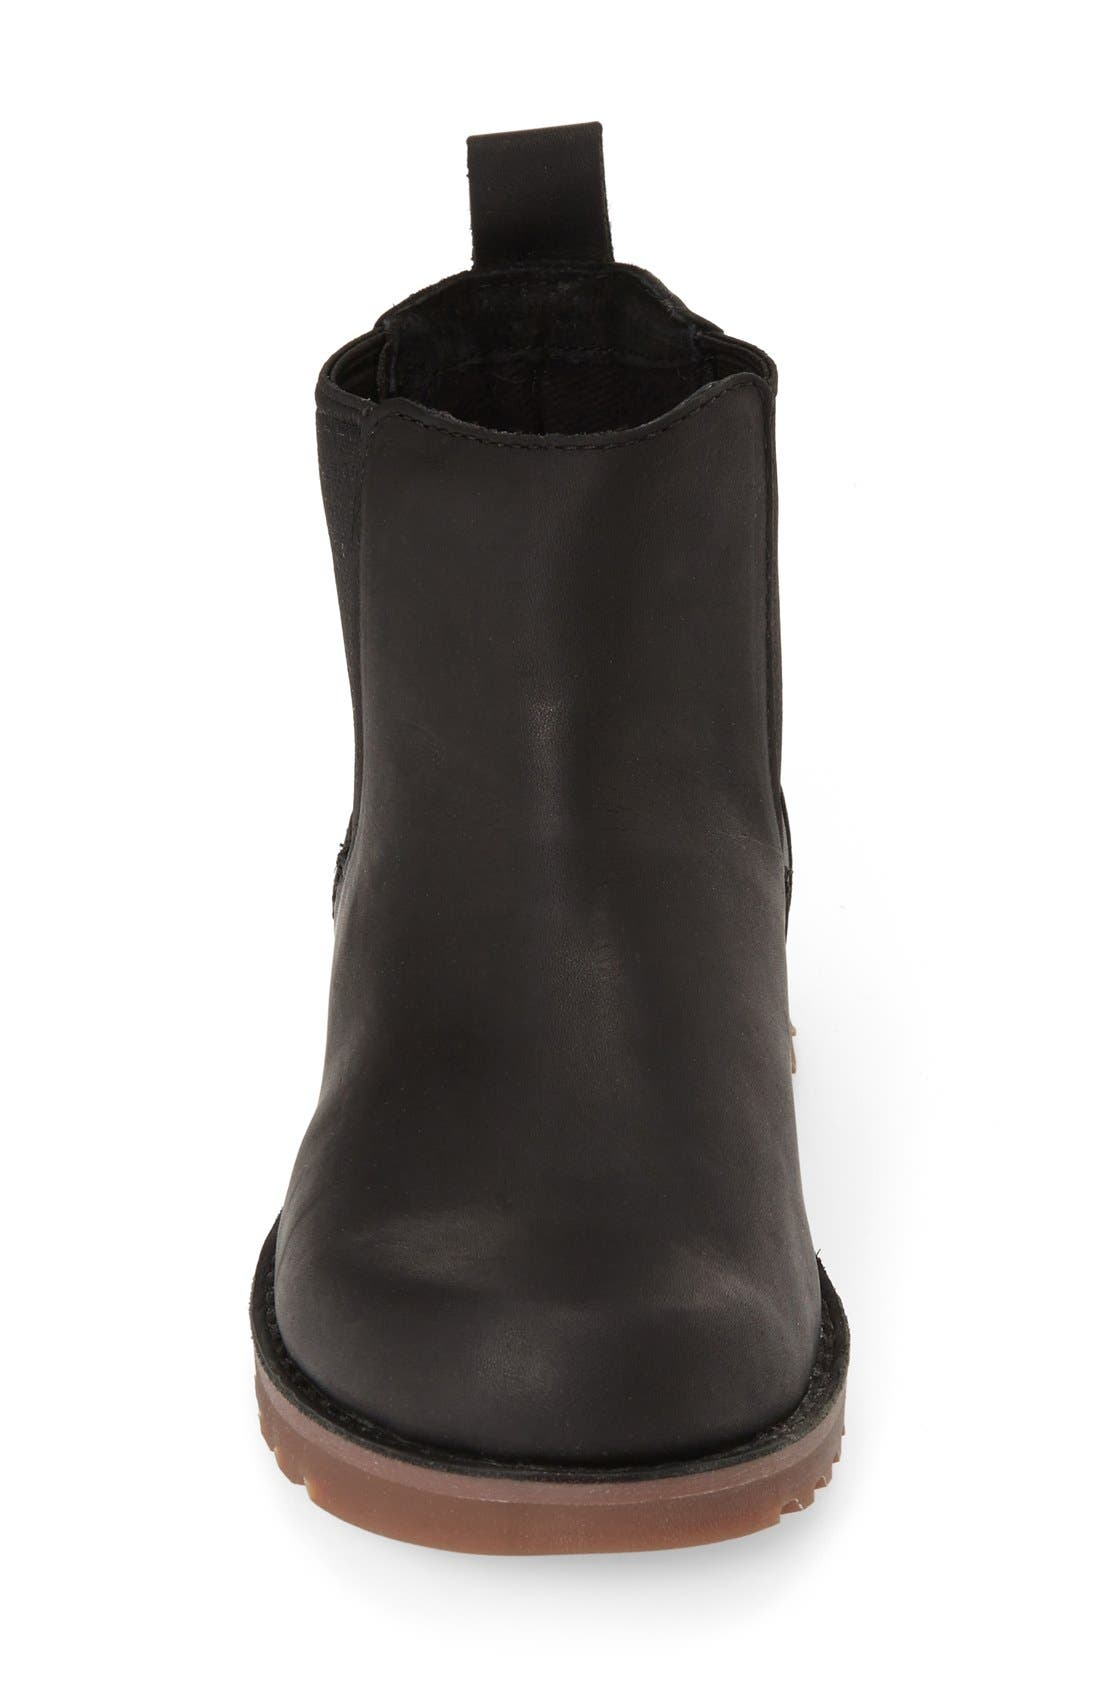 Alternate Image 3  - UGG® Callum Water Resistant Chelsea Boot (Walker, Toddler, Little Kid & Big Kid)